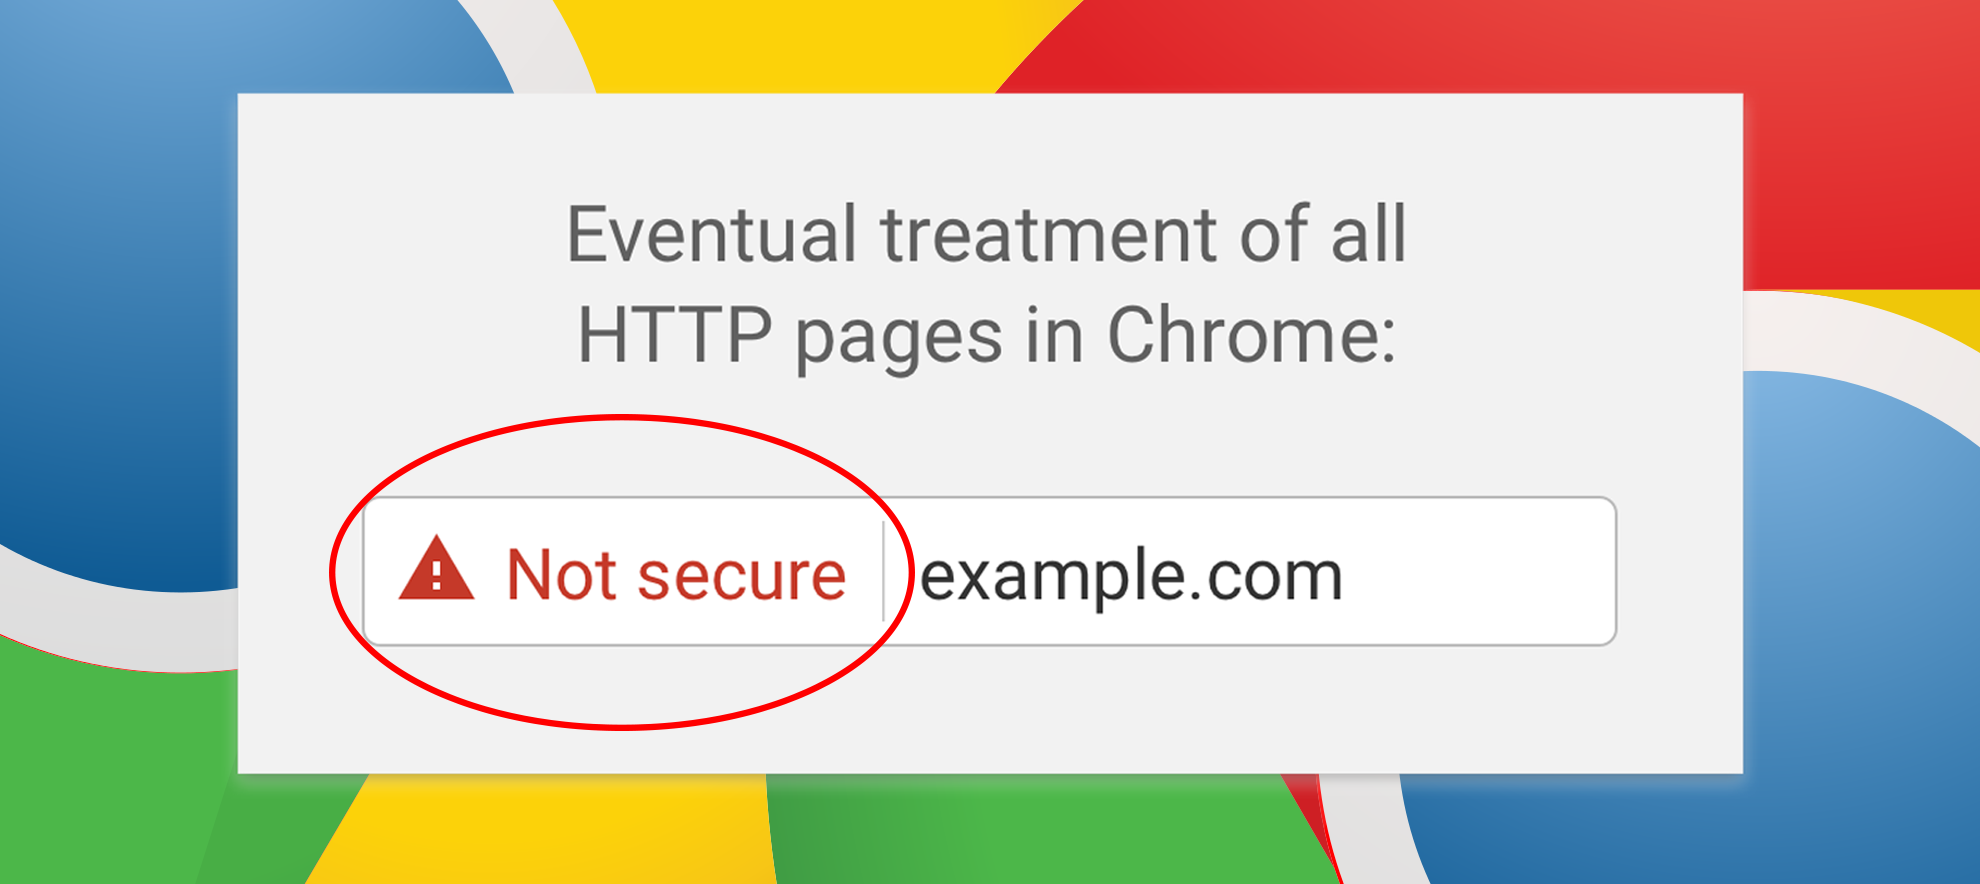 Google Chrome Will Penalize Non-HTTPS Websites This Month. Are You Prepared?